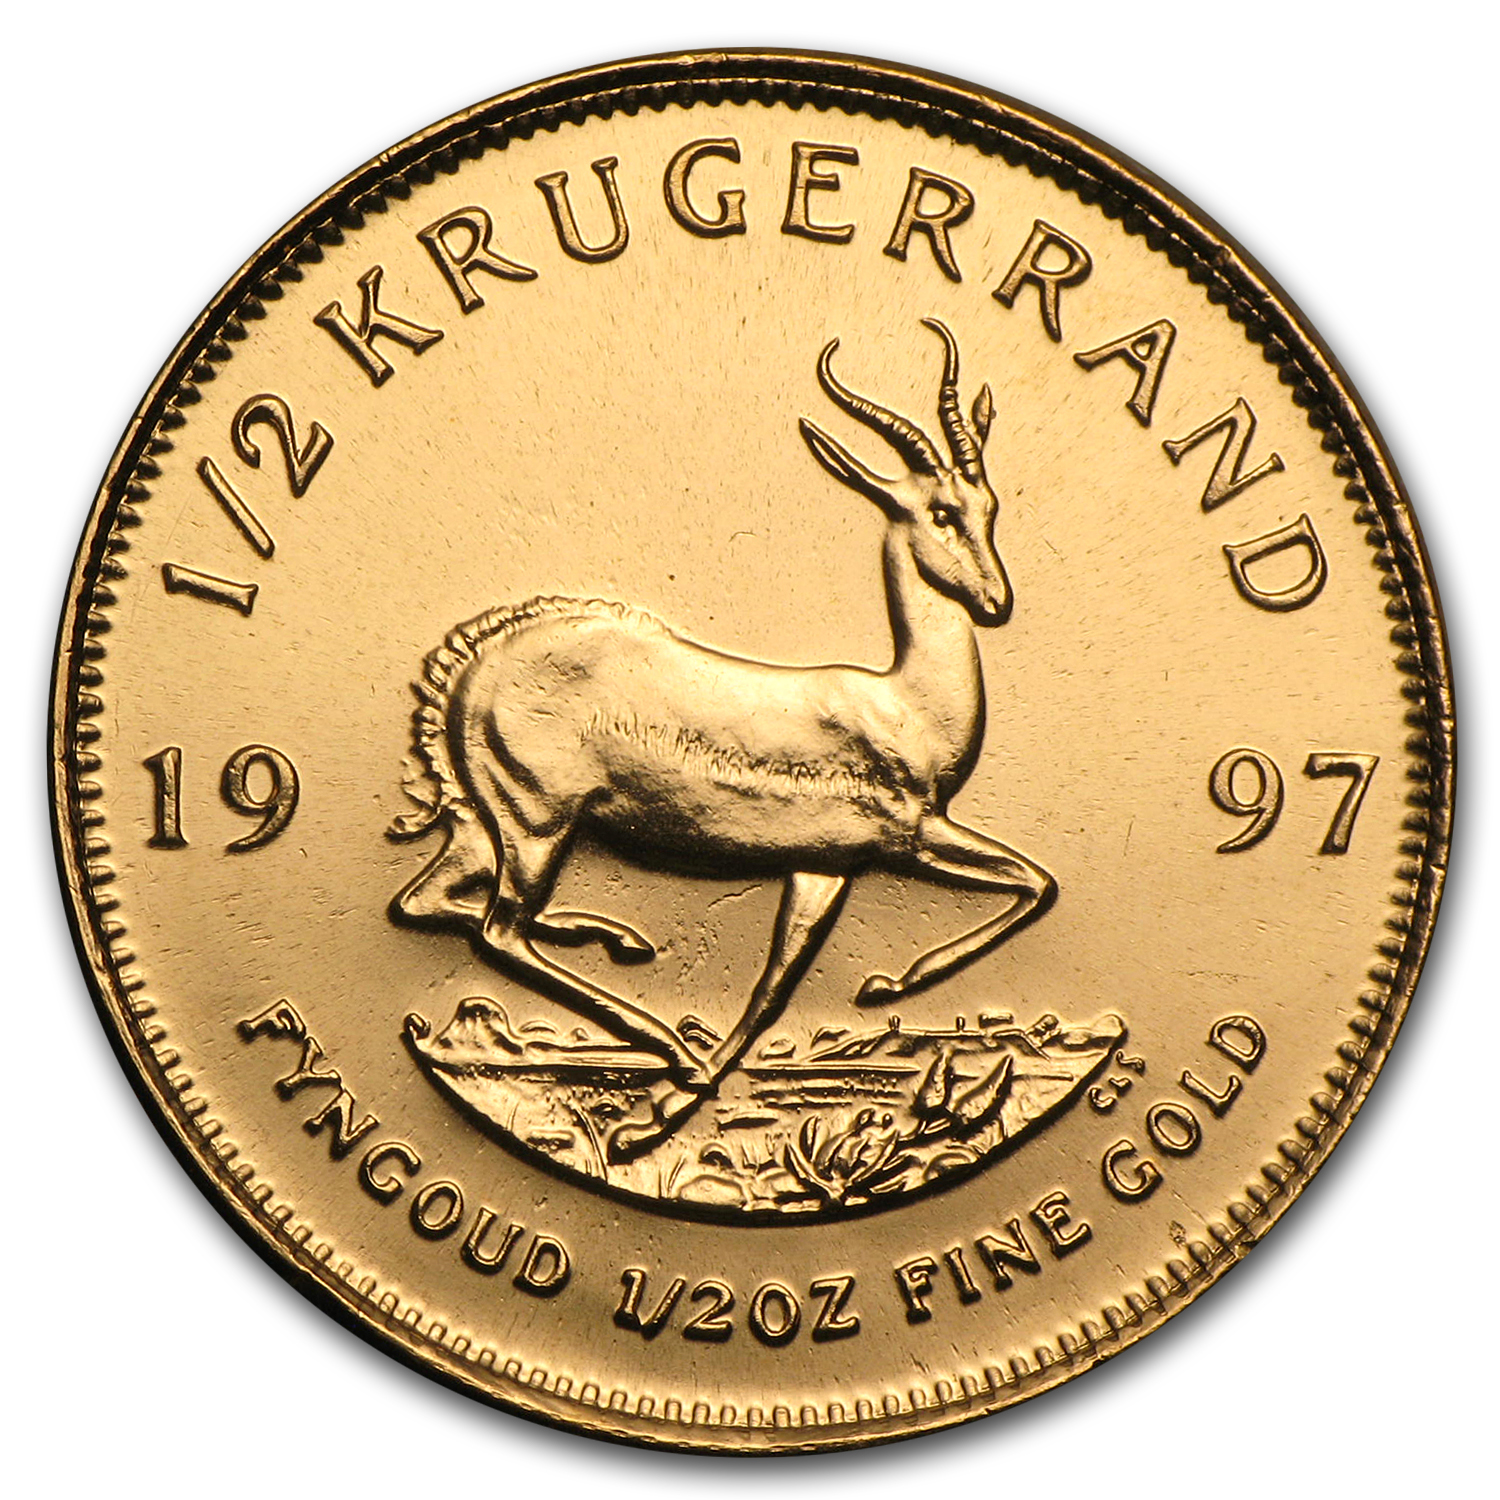 1997 1/2 oz Gold South African Krugerrand